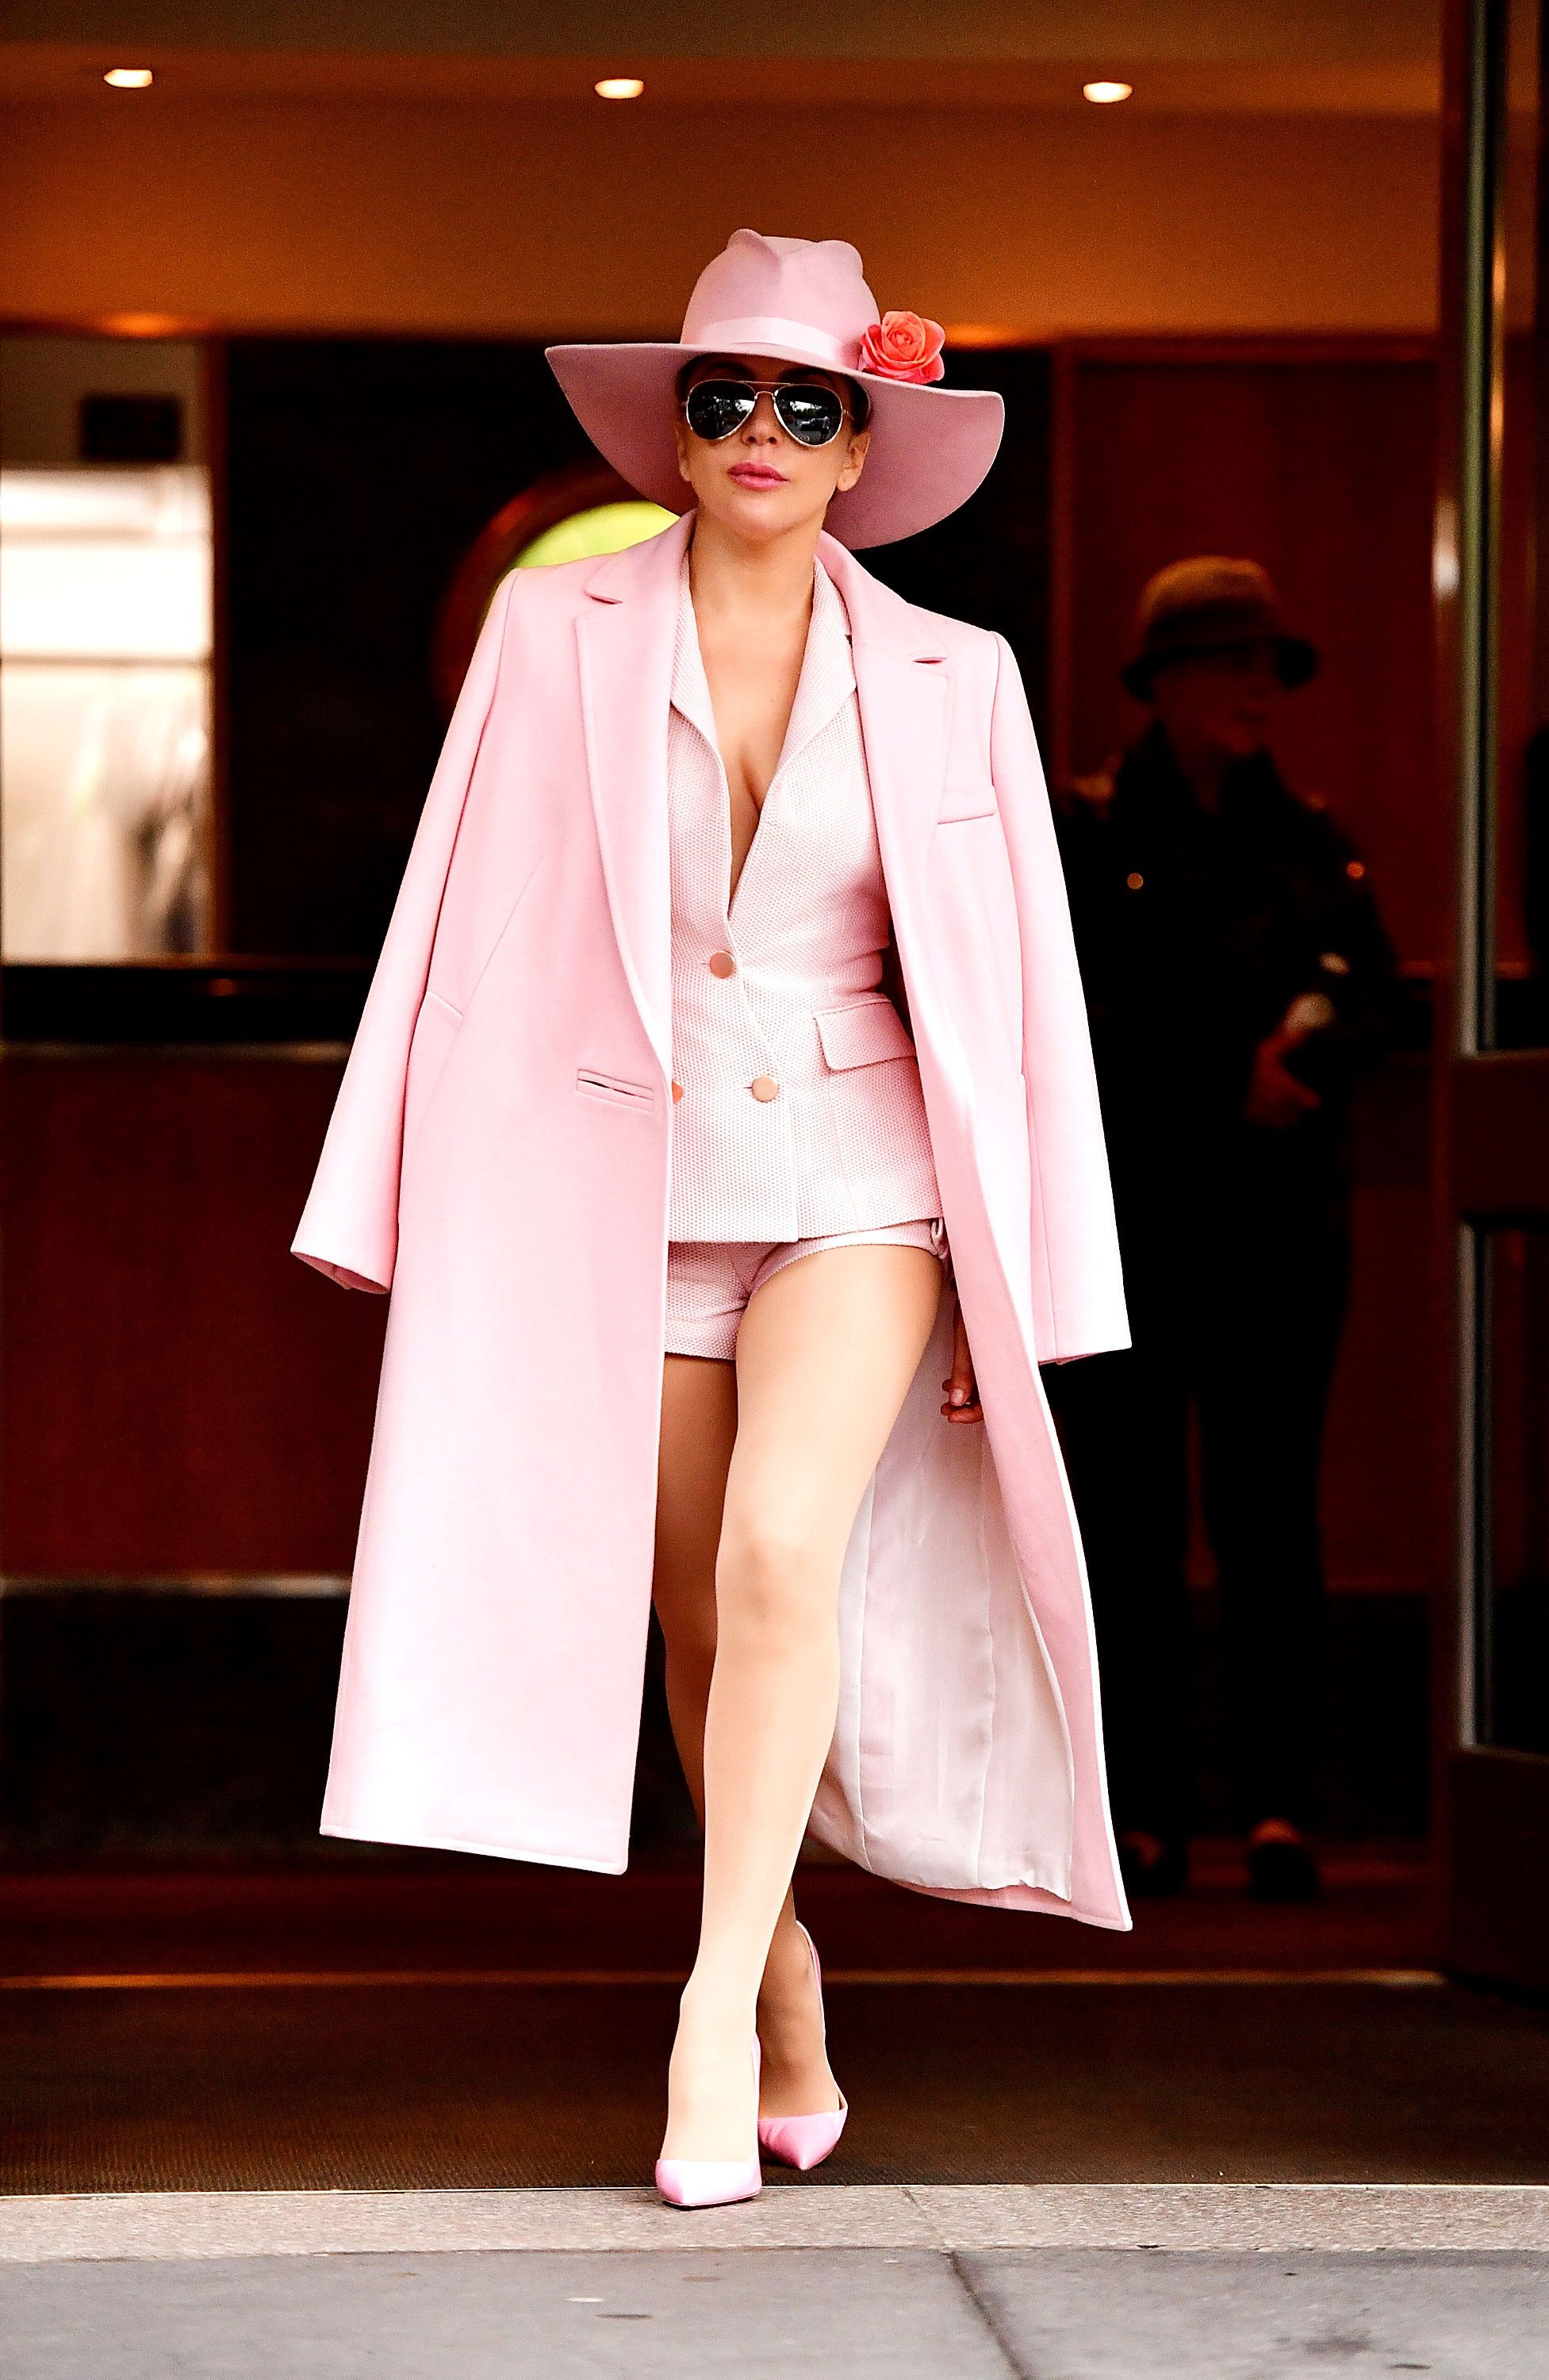 We Never Thought Lady Gaga Would Model Springs Must Wear Colour S De Michel Sandal Flat Wanita Princess Putih In Millennial Pink Outfit